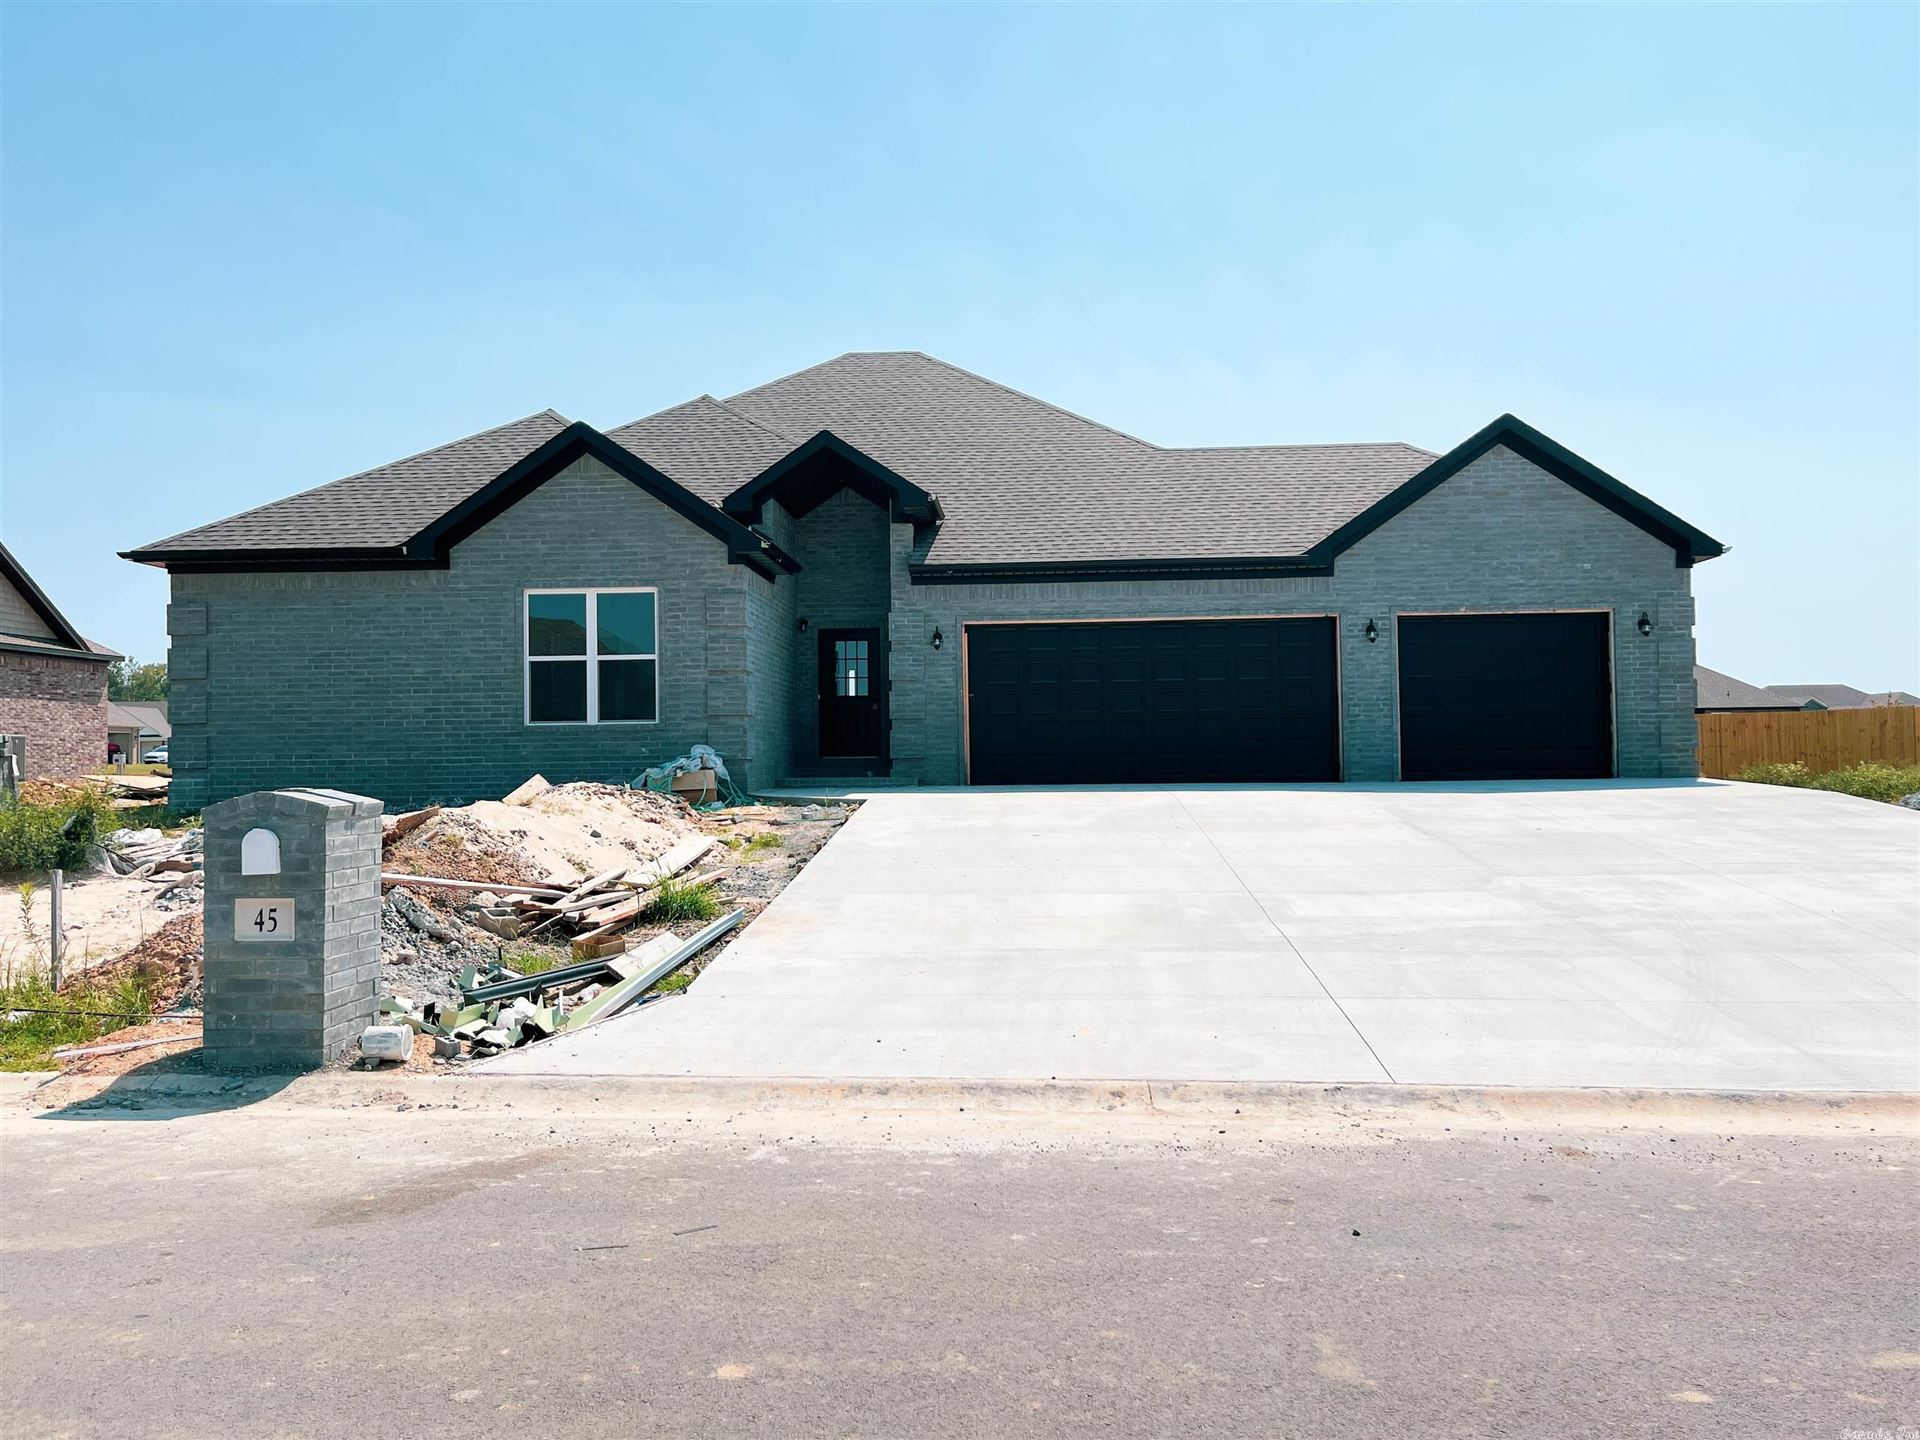 45 Mt Tabor West, Cabot, AR 72023-9999 - MLS#: 21024628